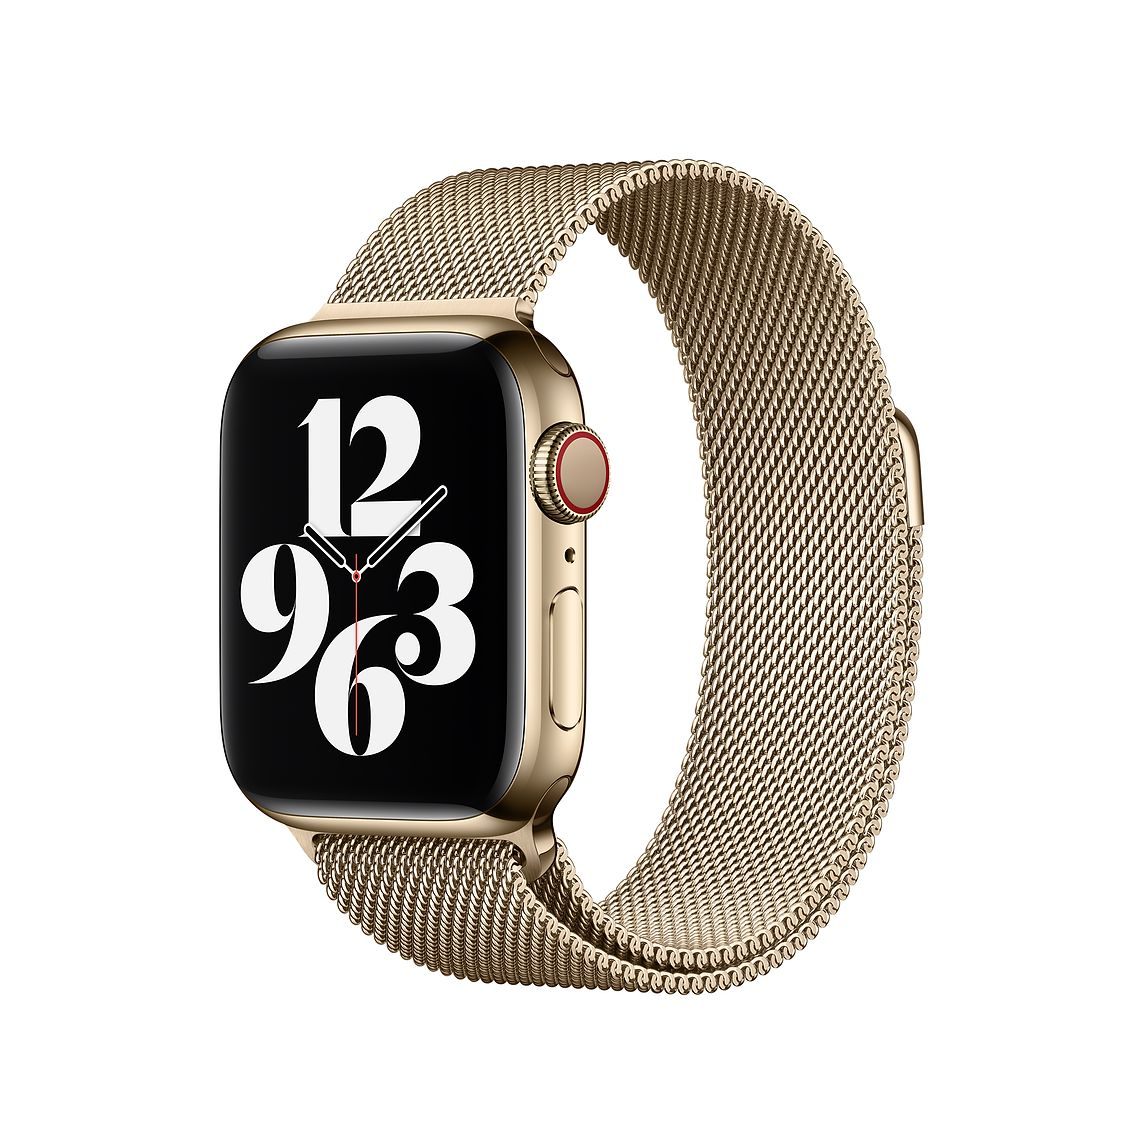 Apple Watch Series 6 with the Milanese Loop strap